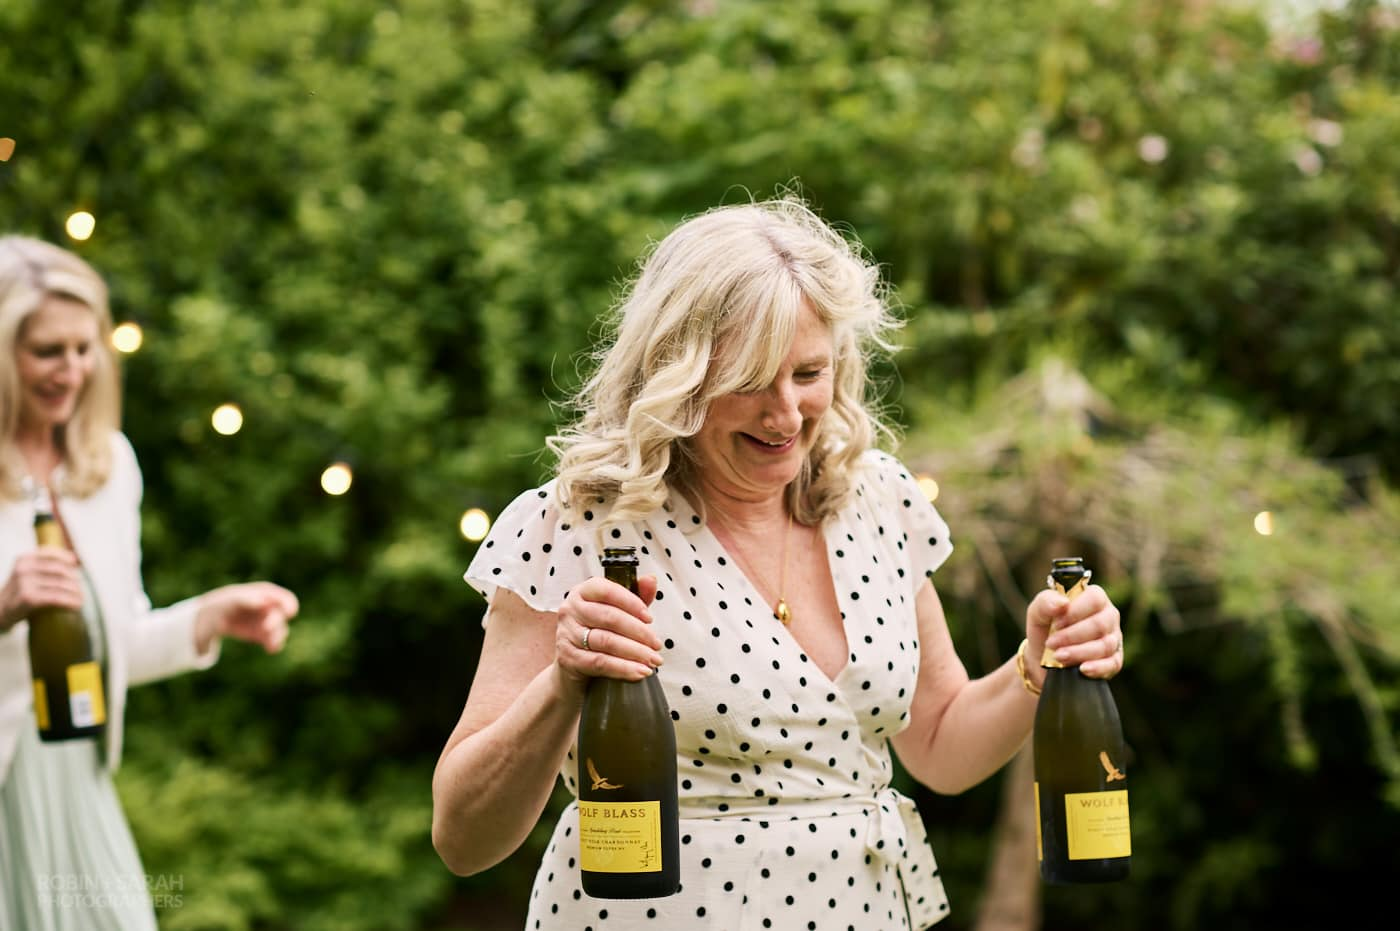 Guests carry bottles of Prosecco for wedding speeches in garden